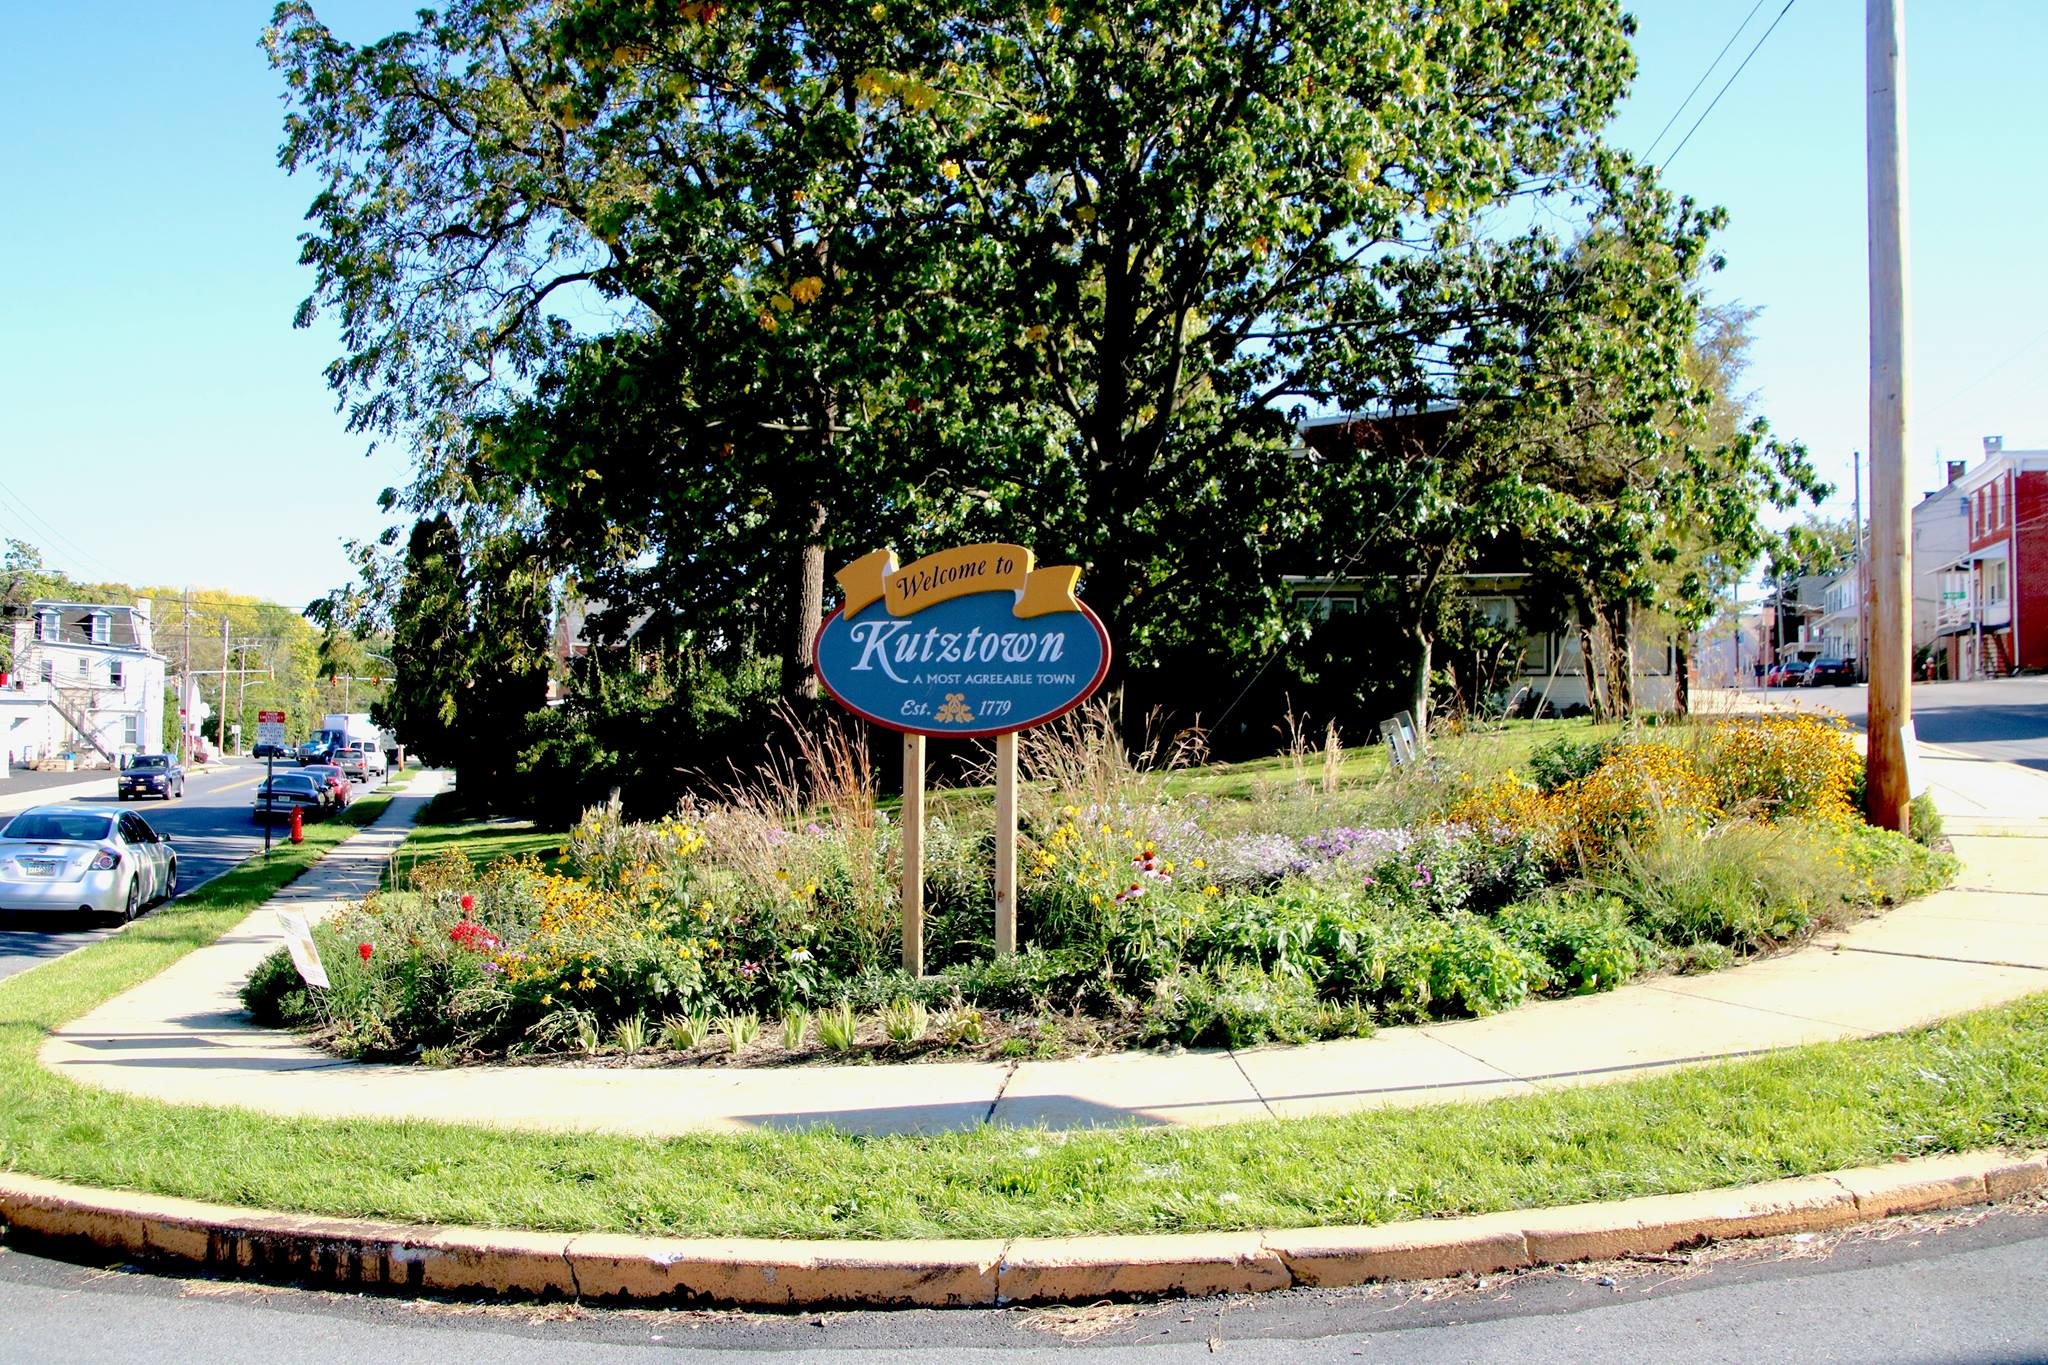 A Welcome to Kutztown sign in a flower garden in the town of Kutztown